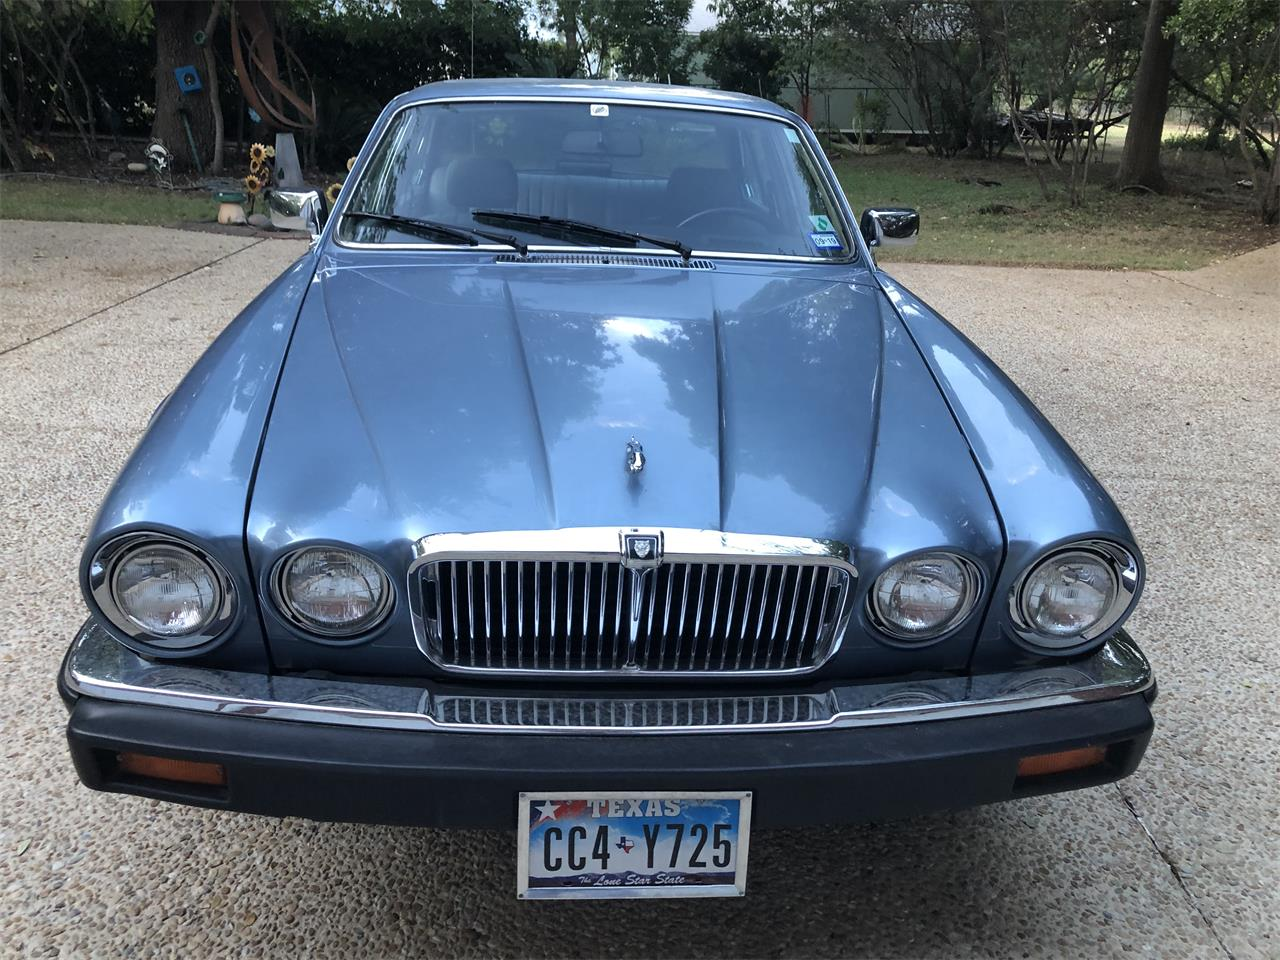 1987 Jaguar XJ6 (CC-1267892) for sale in San Antonio, Texas